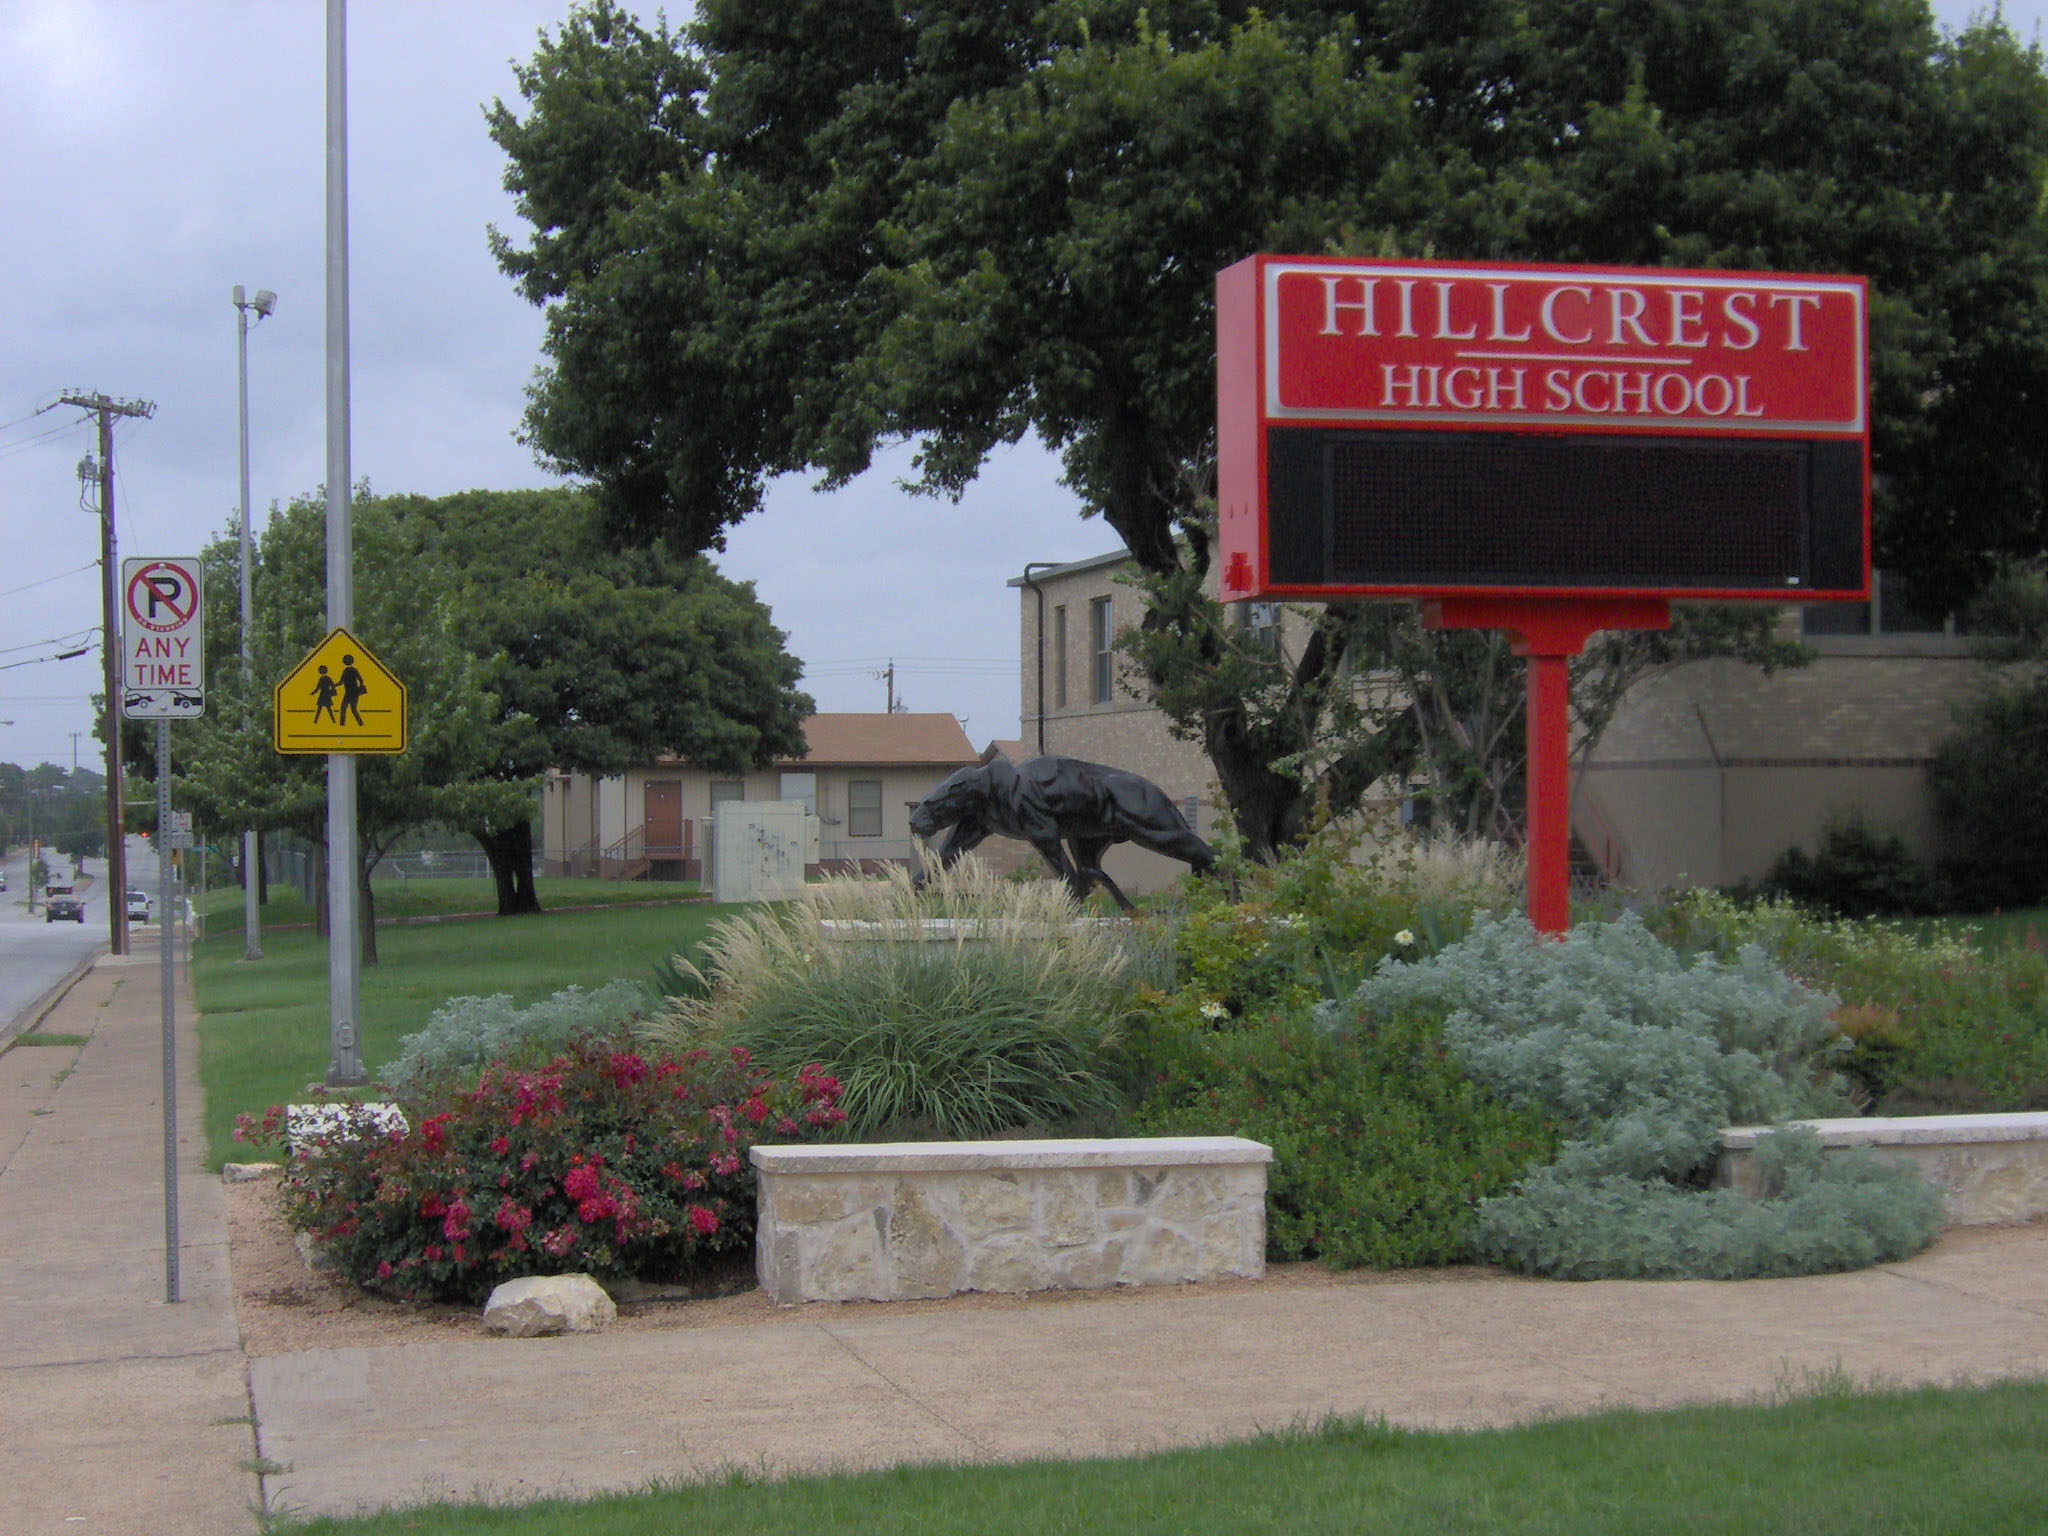 What are some highly rated schools in Dallas?